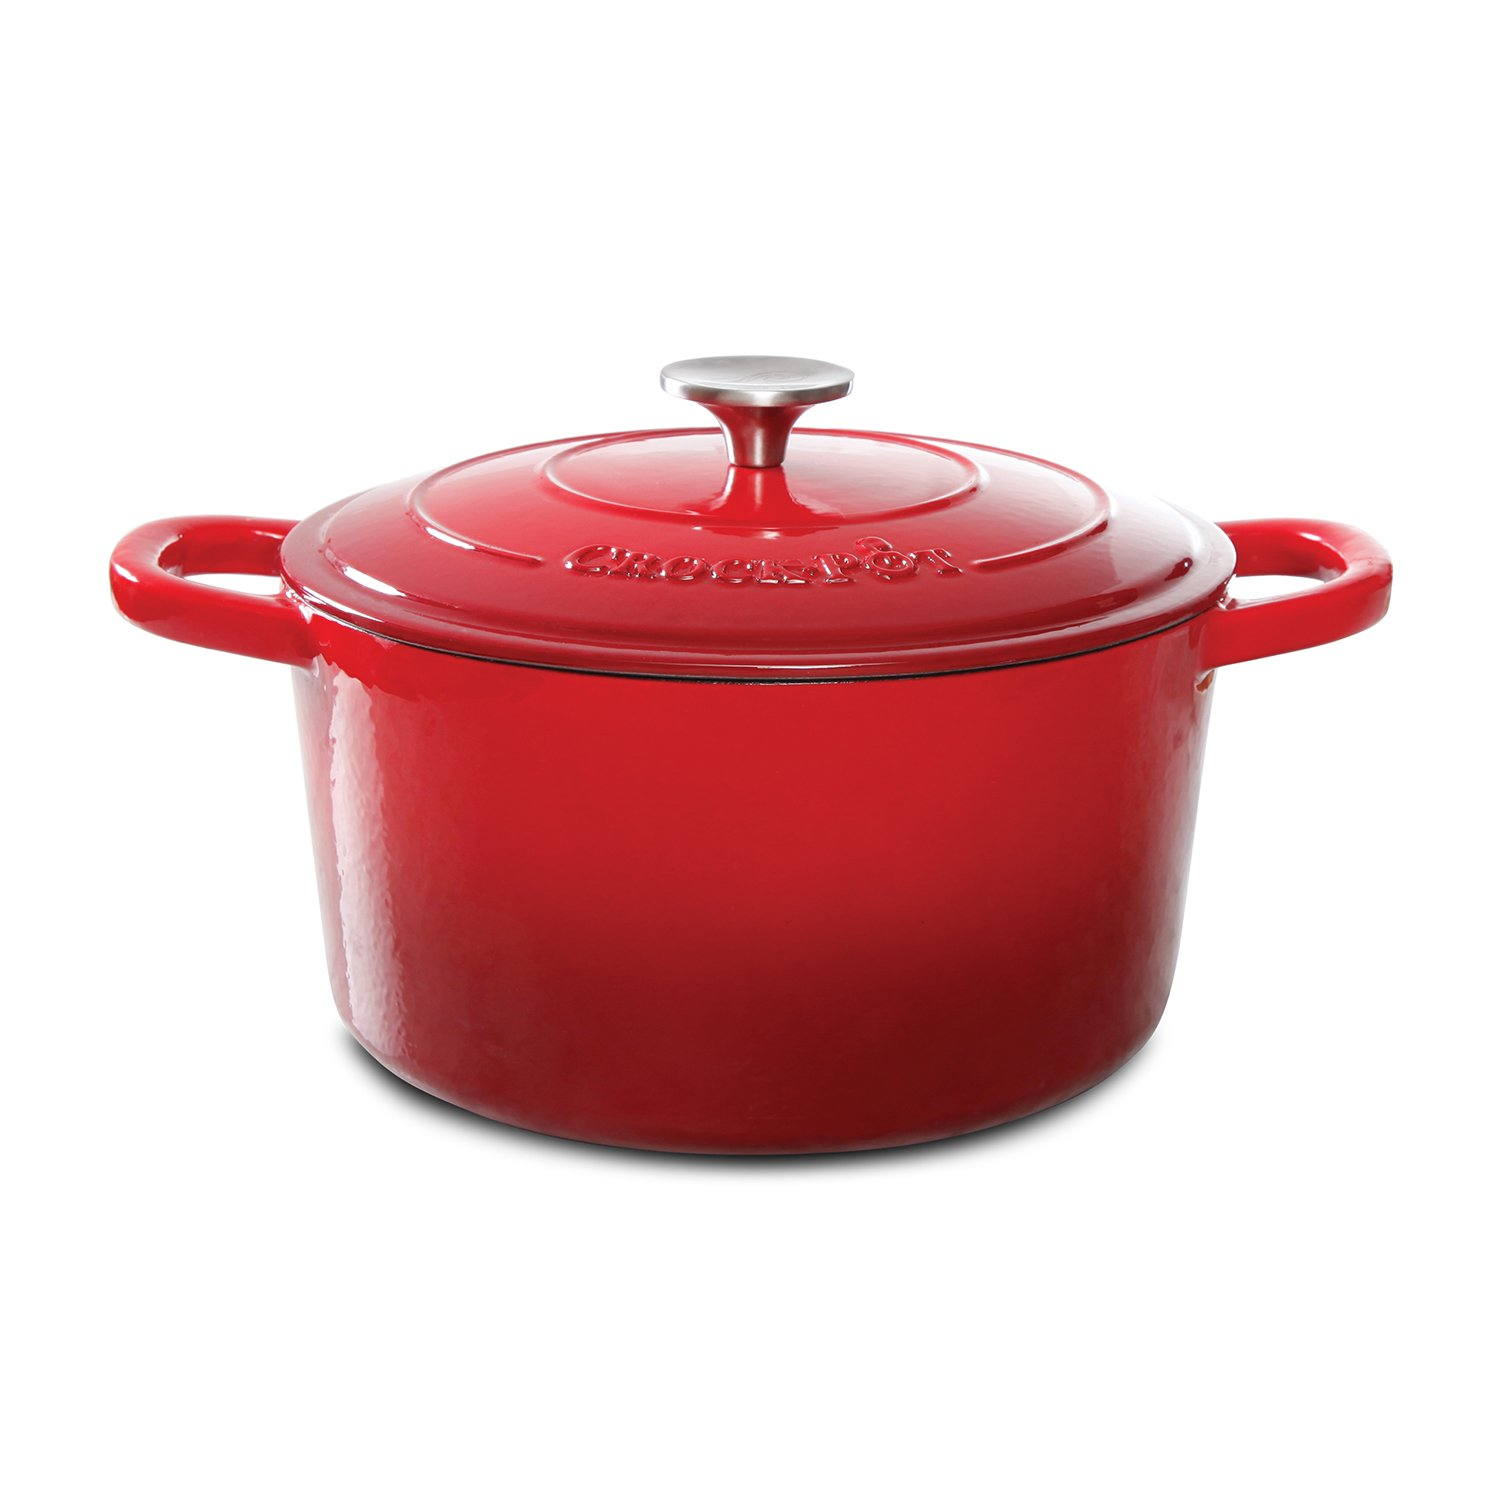 Crock Pot 69141.02 Artisan 5 Quart Enameled Cast Iron Round Dutch Oven, Red